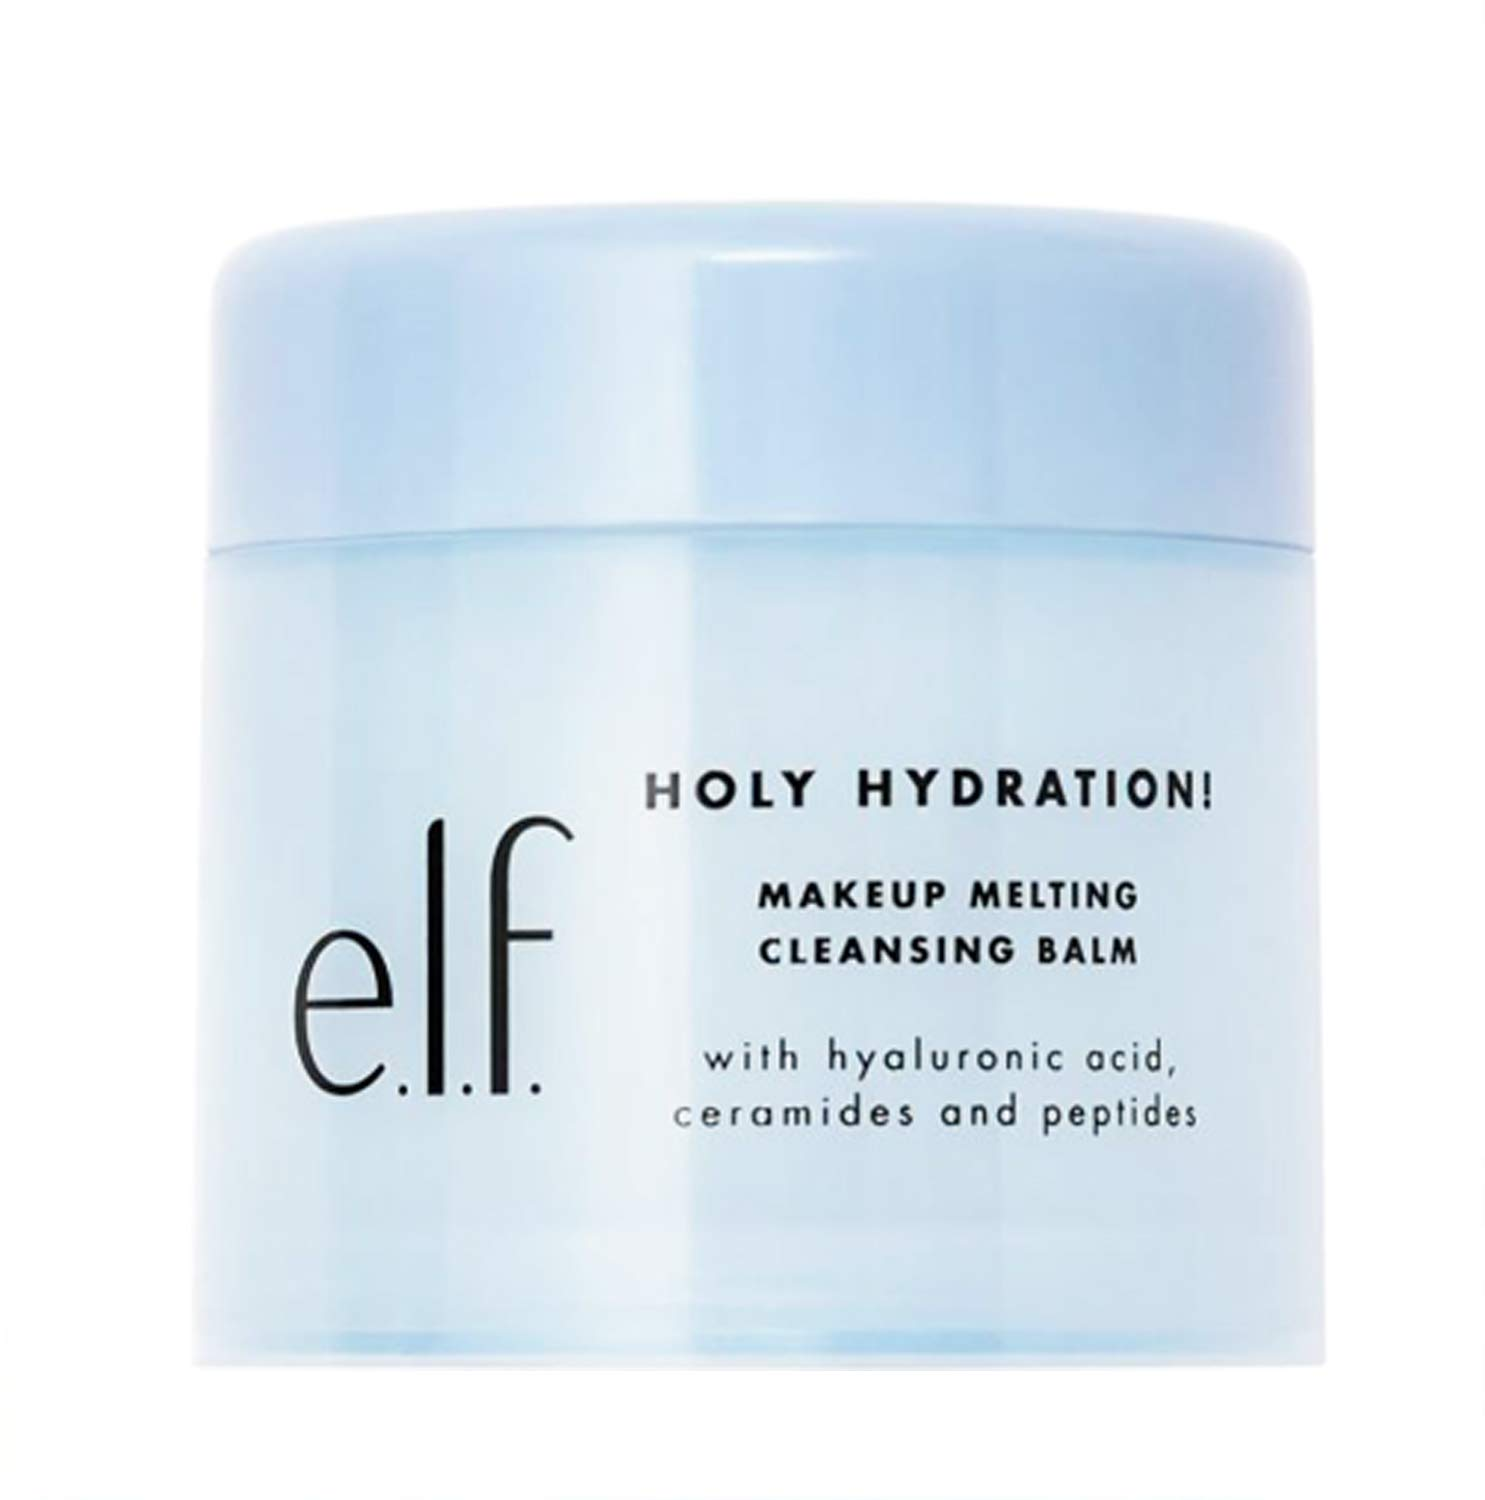 Elf Holy Hydration Makeup Melting Cleansing Balm 2 Oz! Infused With Hyaluronic Acid, Ceramides And Peptides! Easily Removes Makeup And Leaves Skin Feeling Soft With Hydration! Vegan & Cruelty Free!